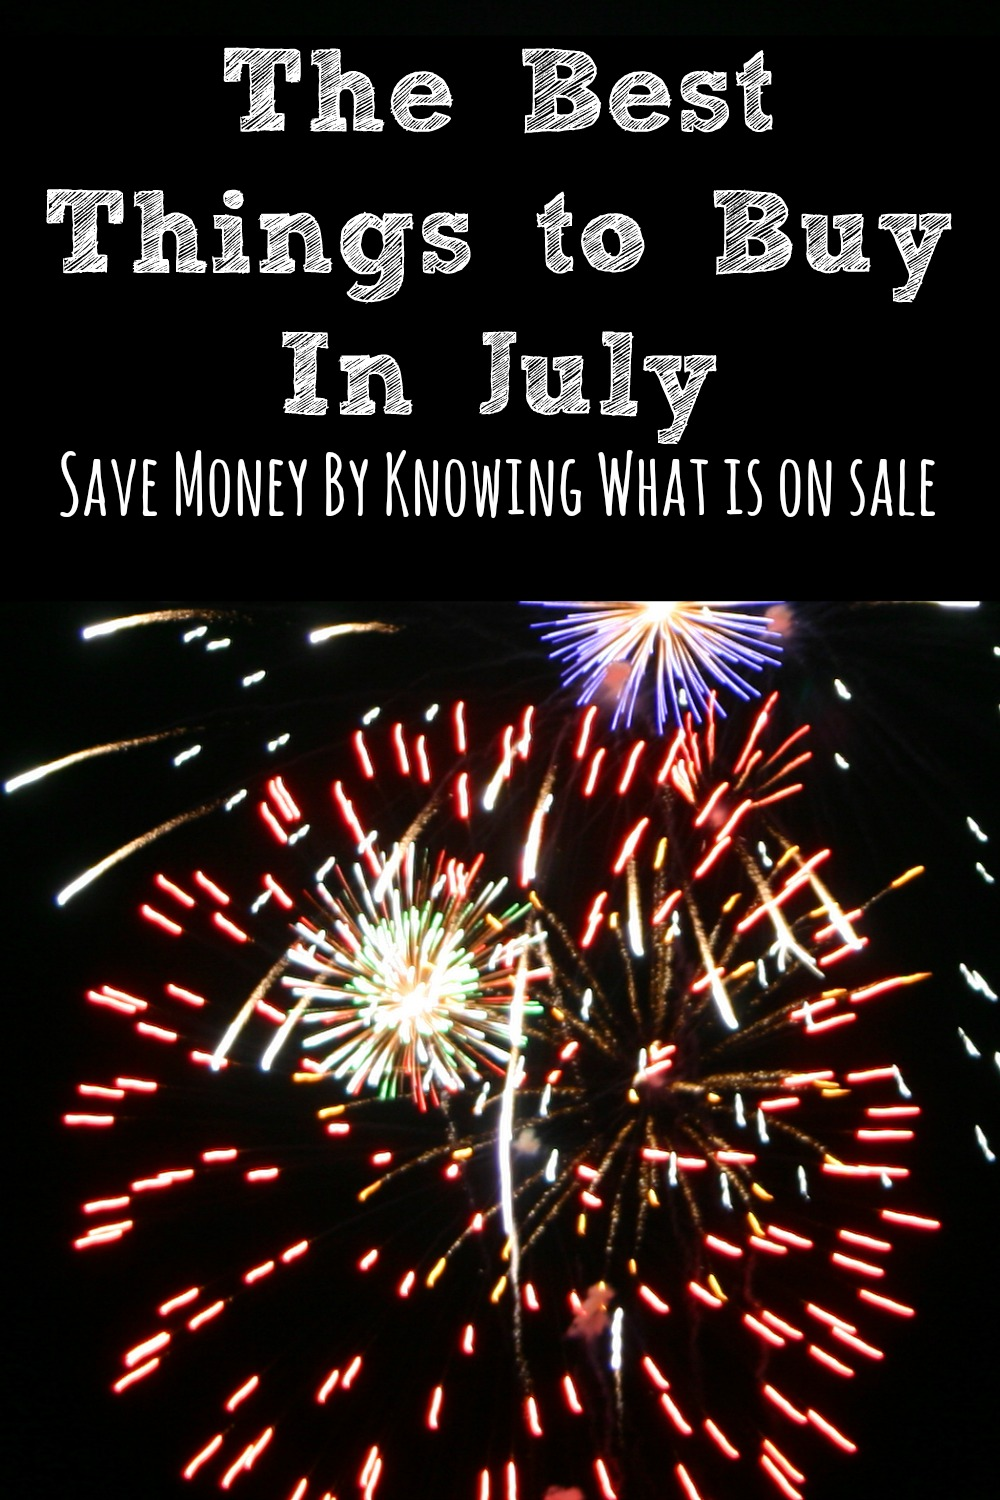 Saving money can be all about timing and July always has better deals on some things than others. Here are the best things to buy in July!